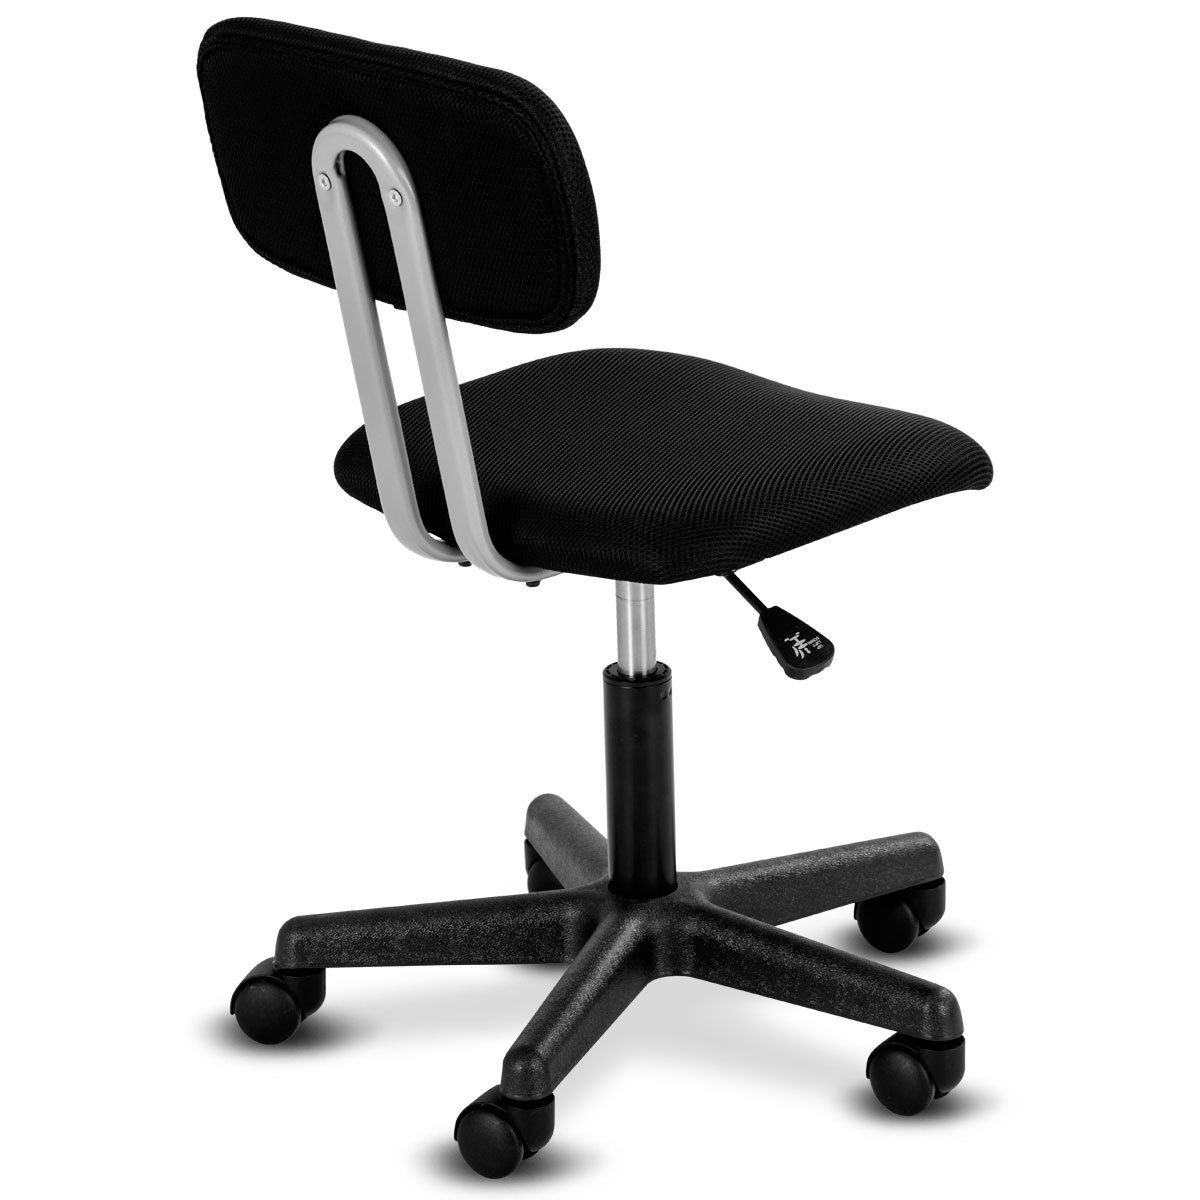 Swivel Height Adjustable Mid-back Mesh Armless Office Chair